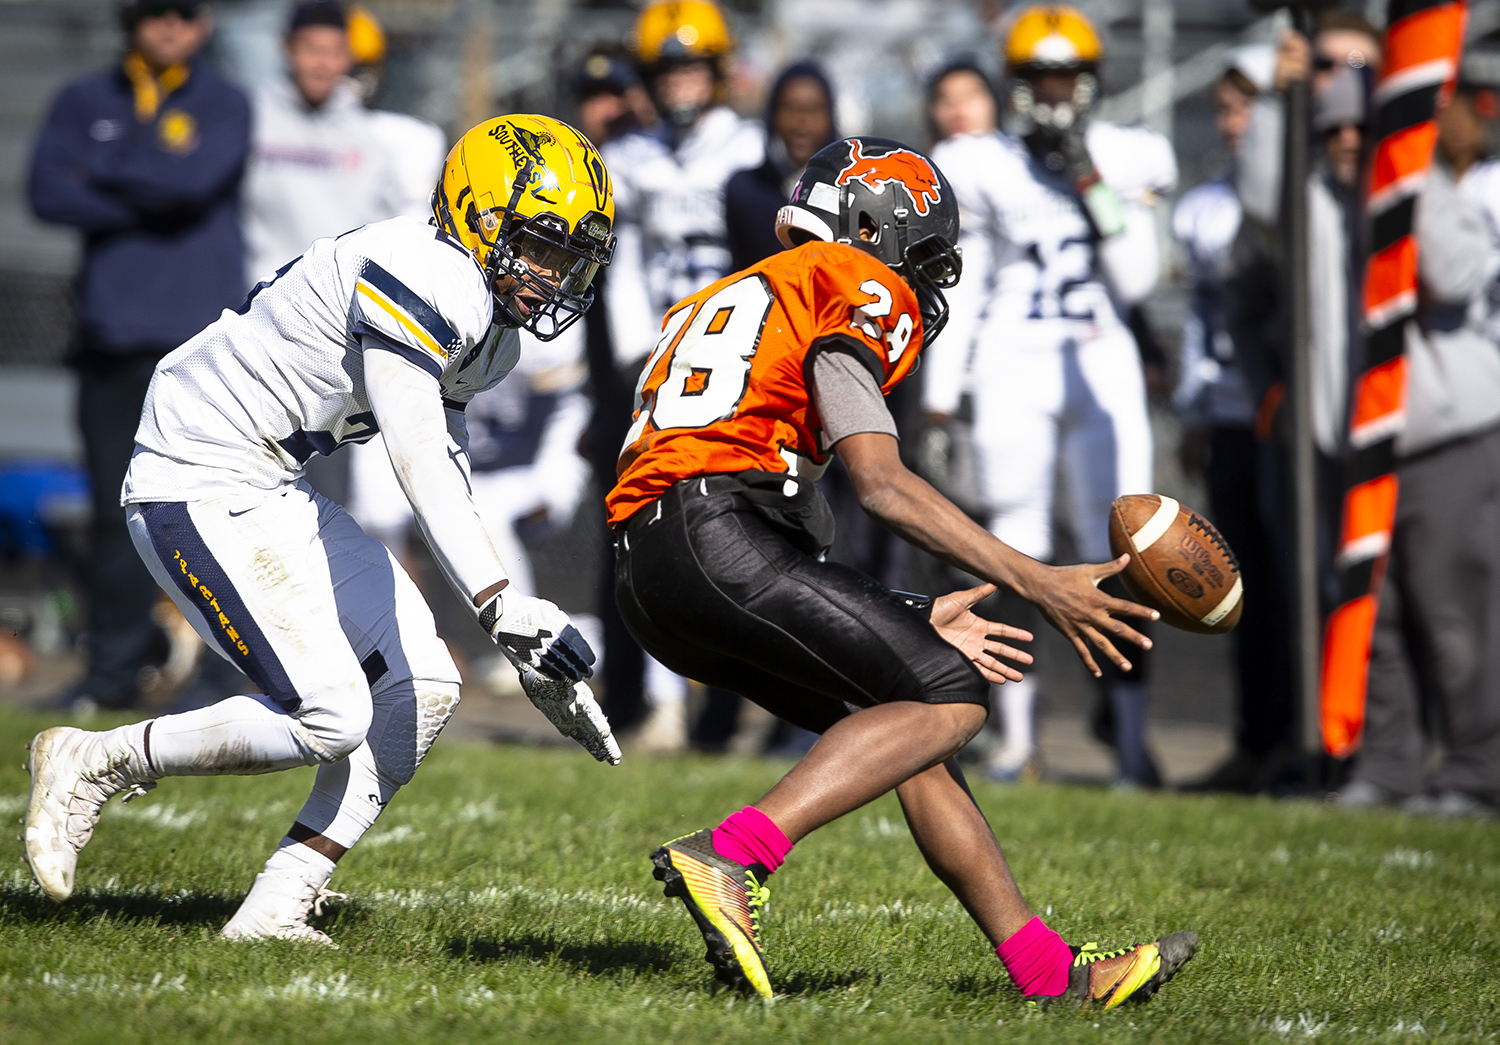 Southeast's Josh Williams chases after a ball that got away from Lanphier's A'Tejon Lee at Memorial Stadium Saturday, Oct. 20, 2018 in Springfield, Ill. Williams recovered the fumble for the Spartans. [Rich Saal/The State Journal-Register]